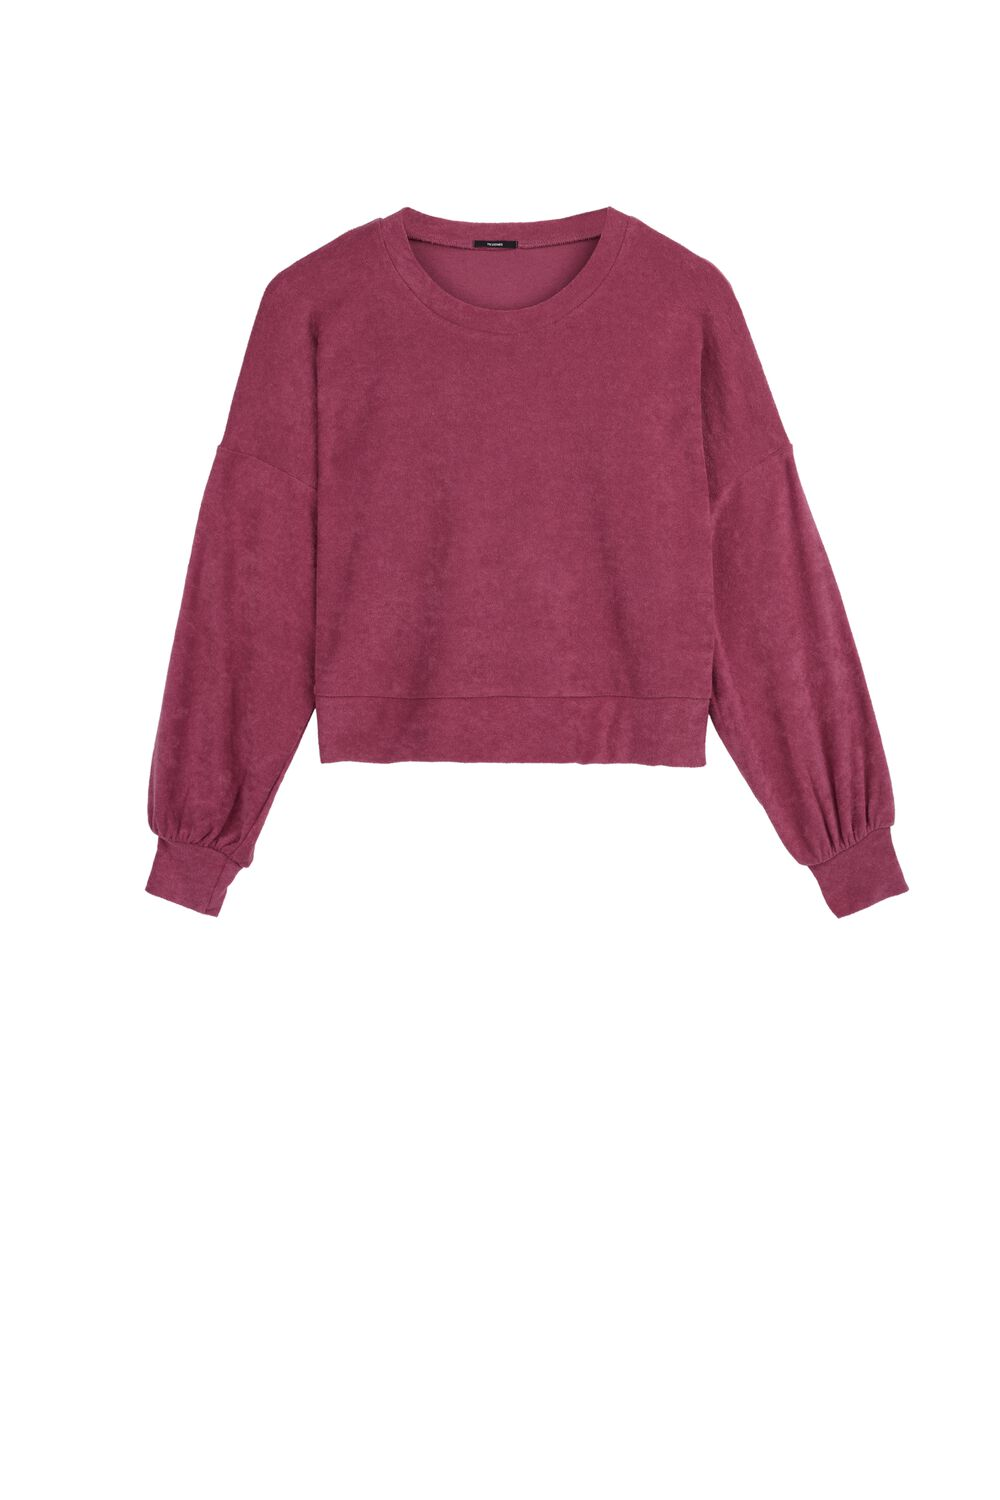 Crop Sponge Sweatshirt